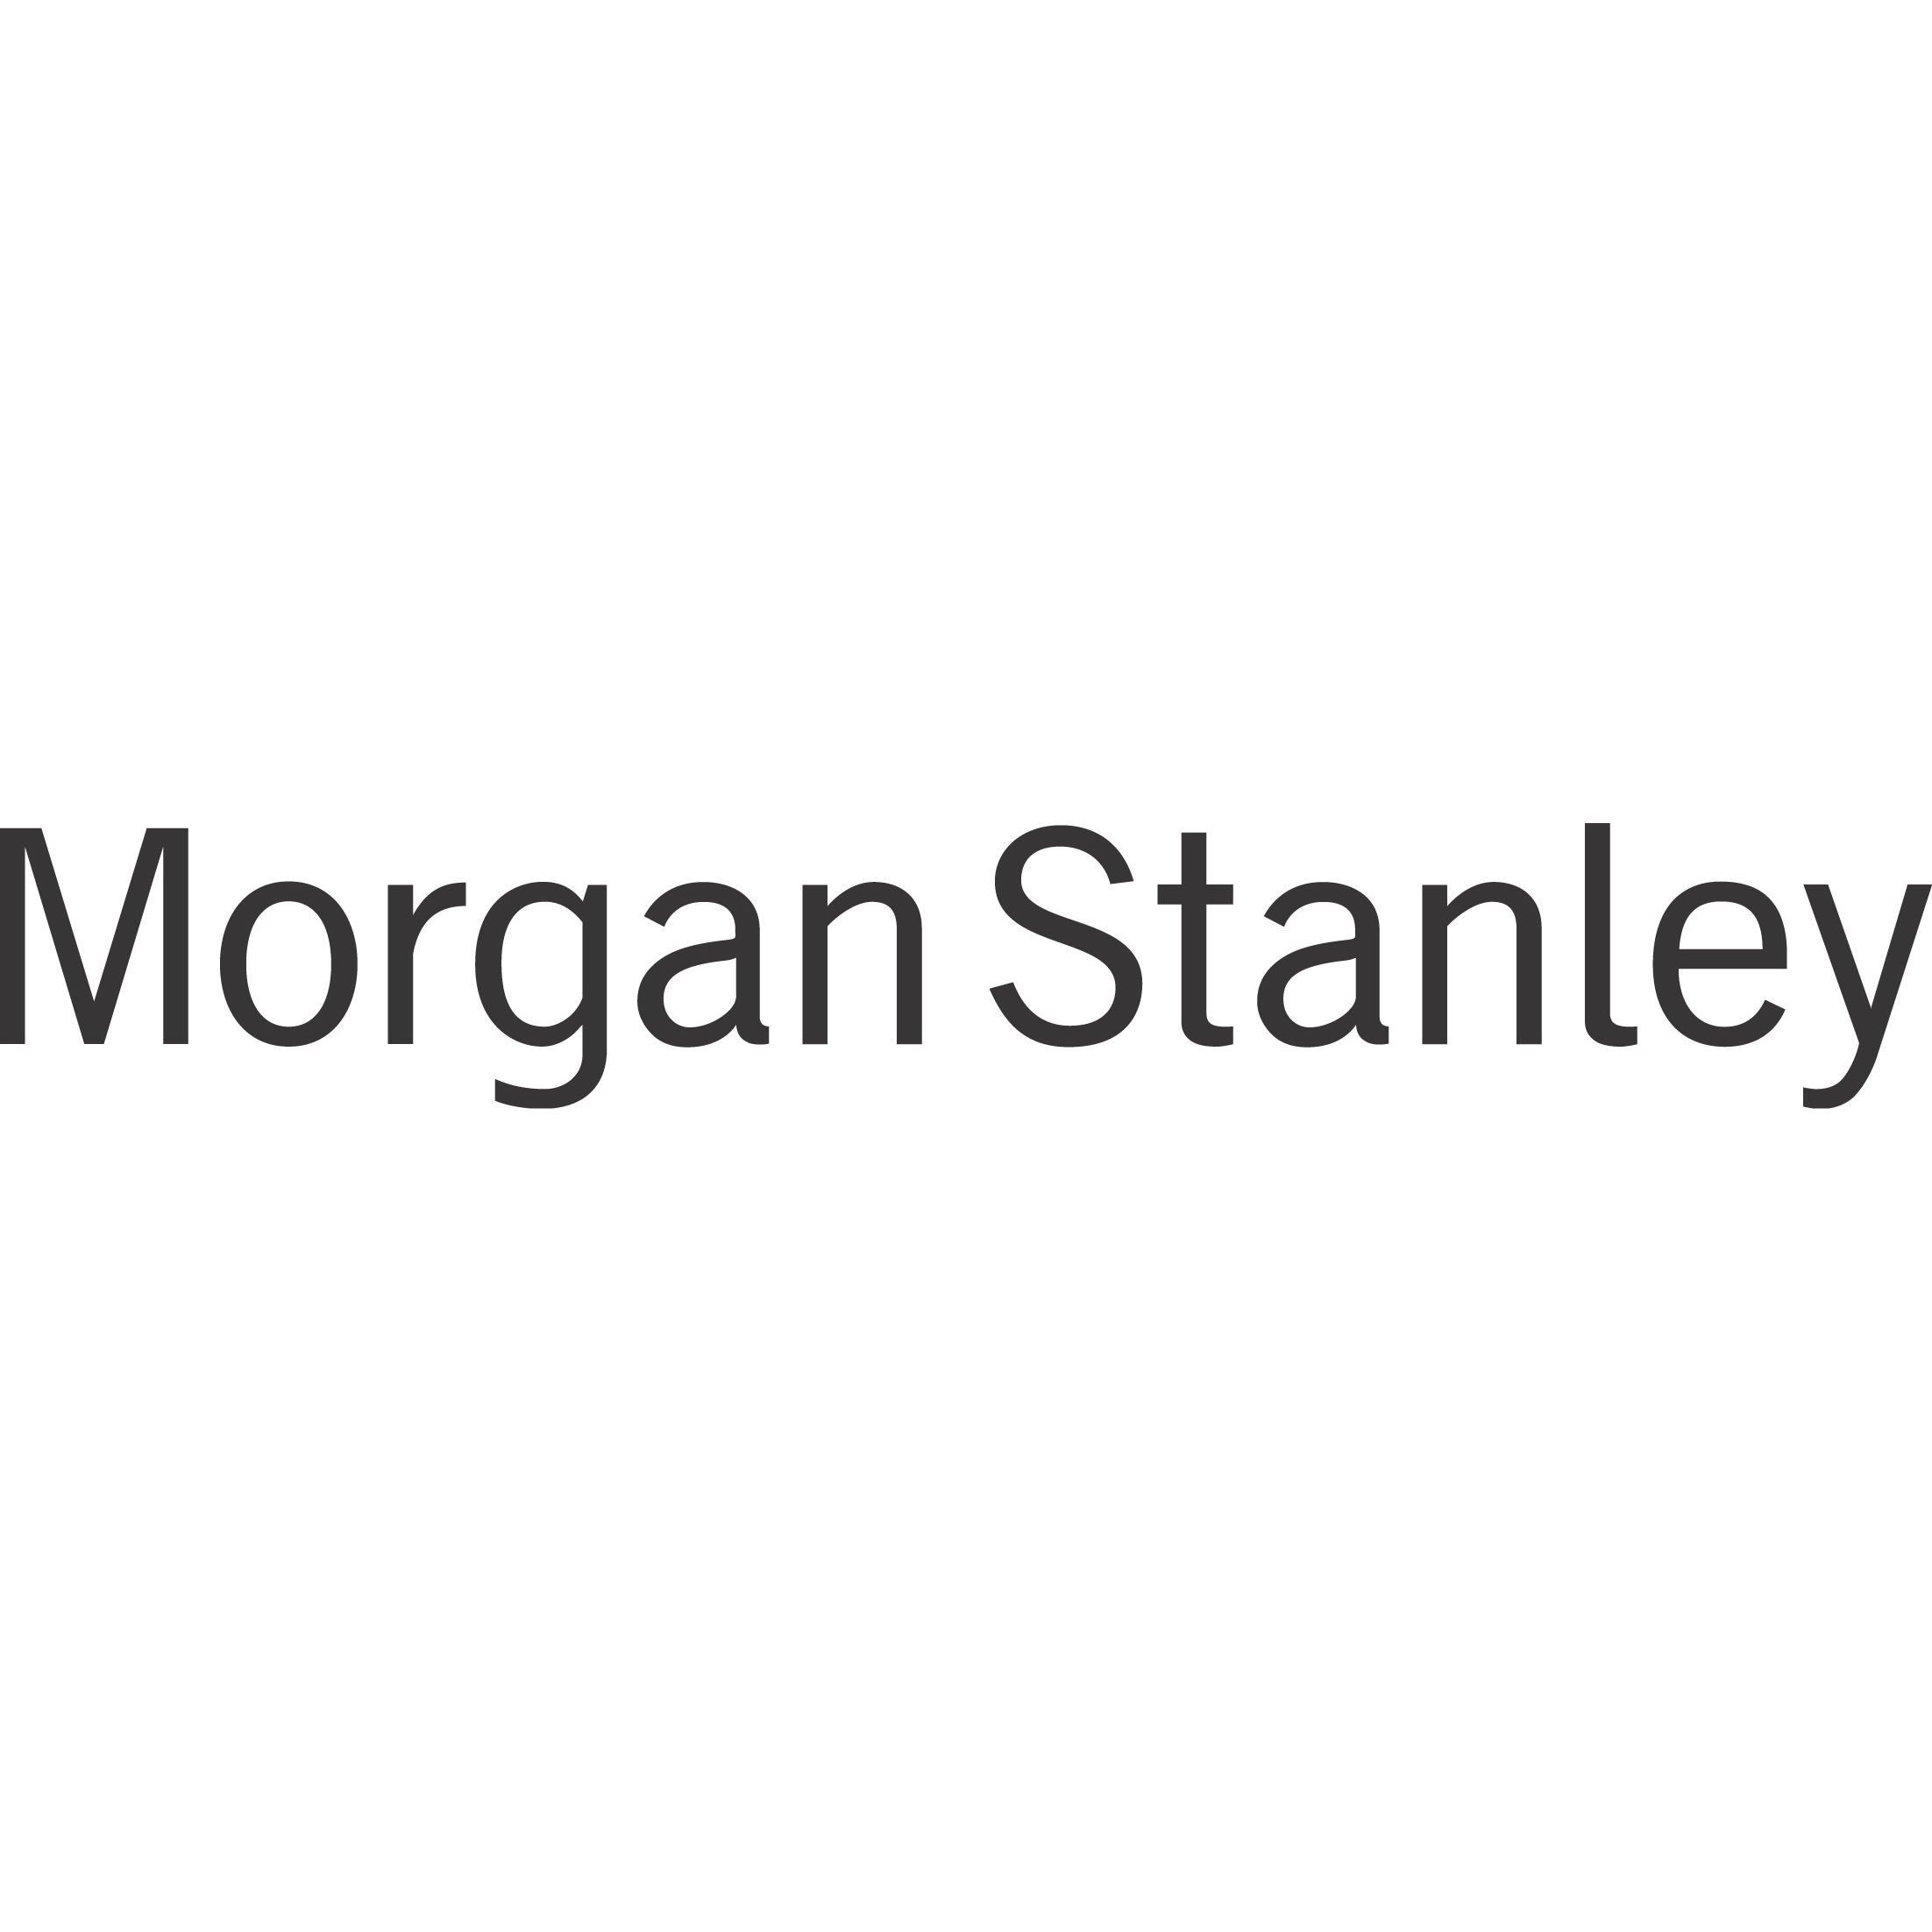 Michael Timothy - Morgan Stanley | Financial Advisor in Washington,District of Columbia